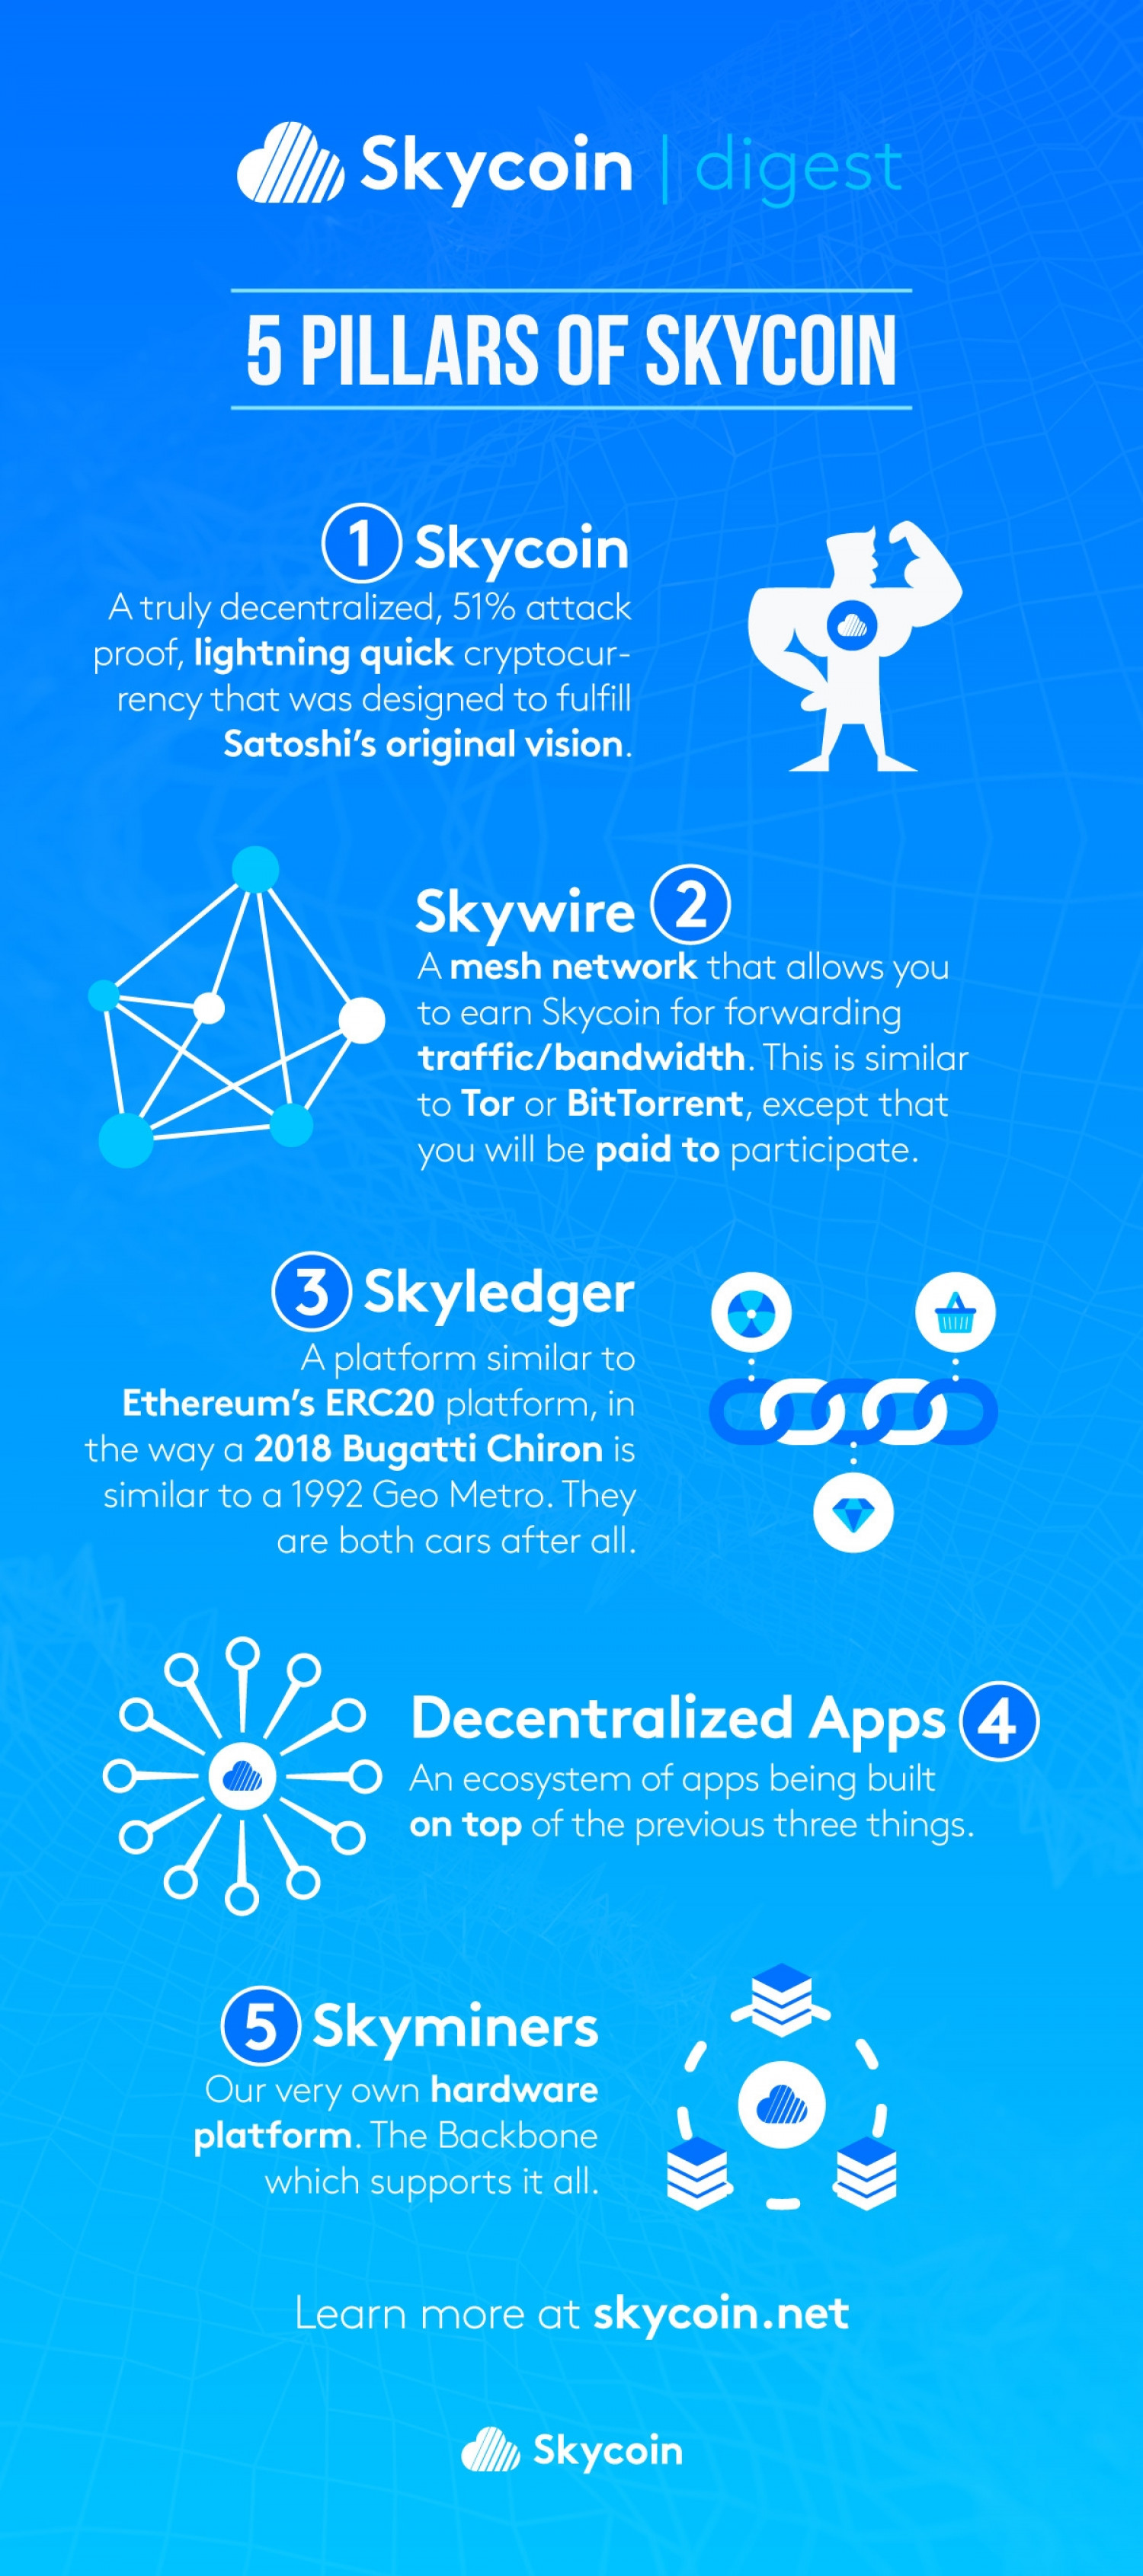 What's the difference between Skycoin and Skywire? Infographic